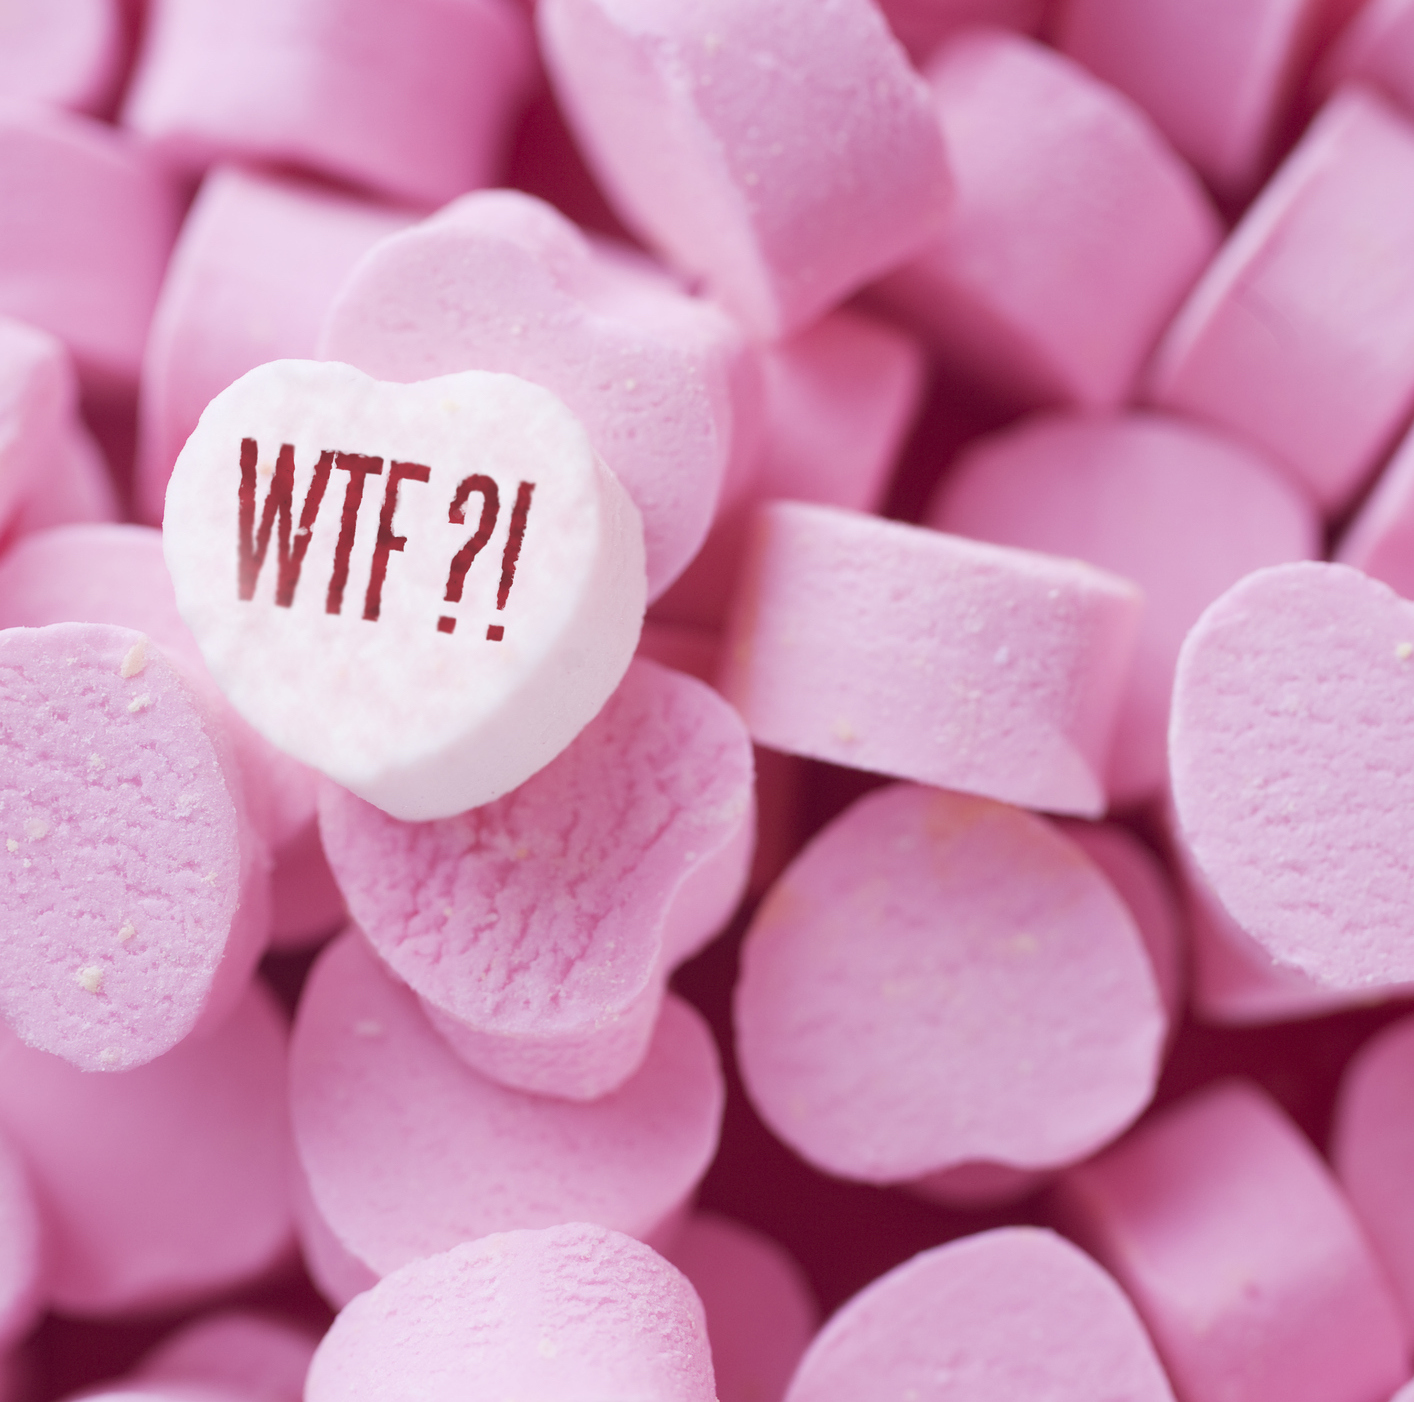 I Hate Valentines Day: WTF